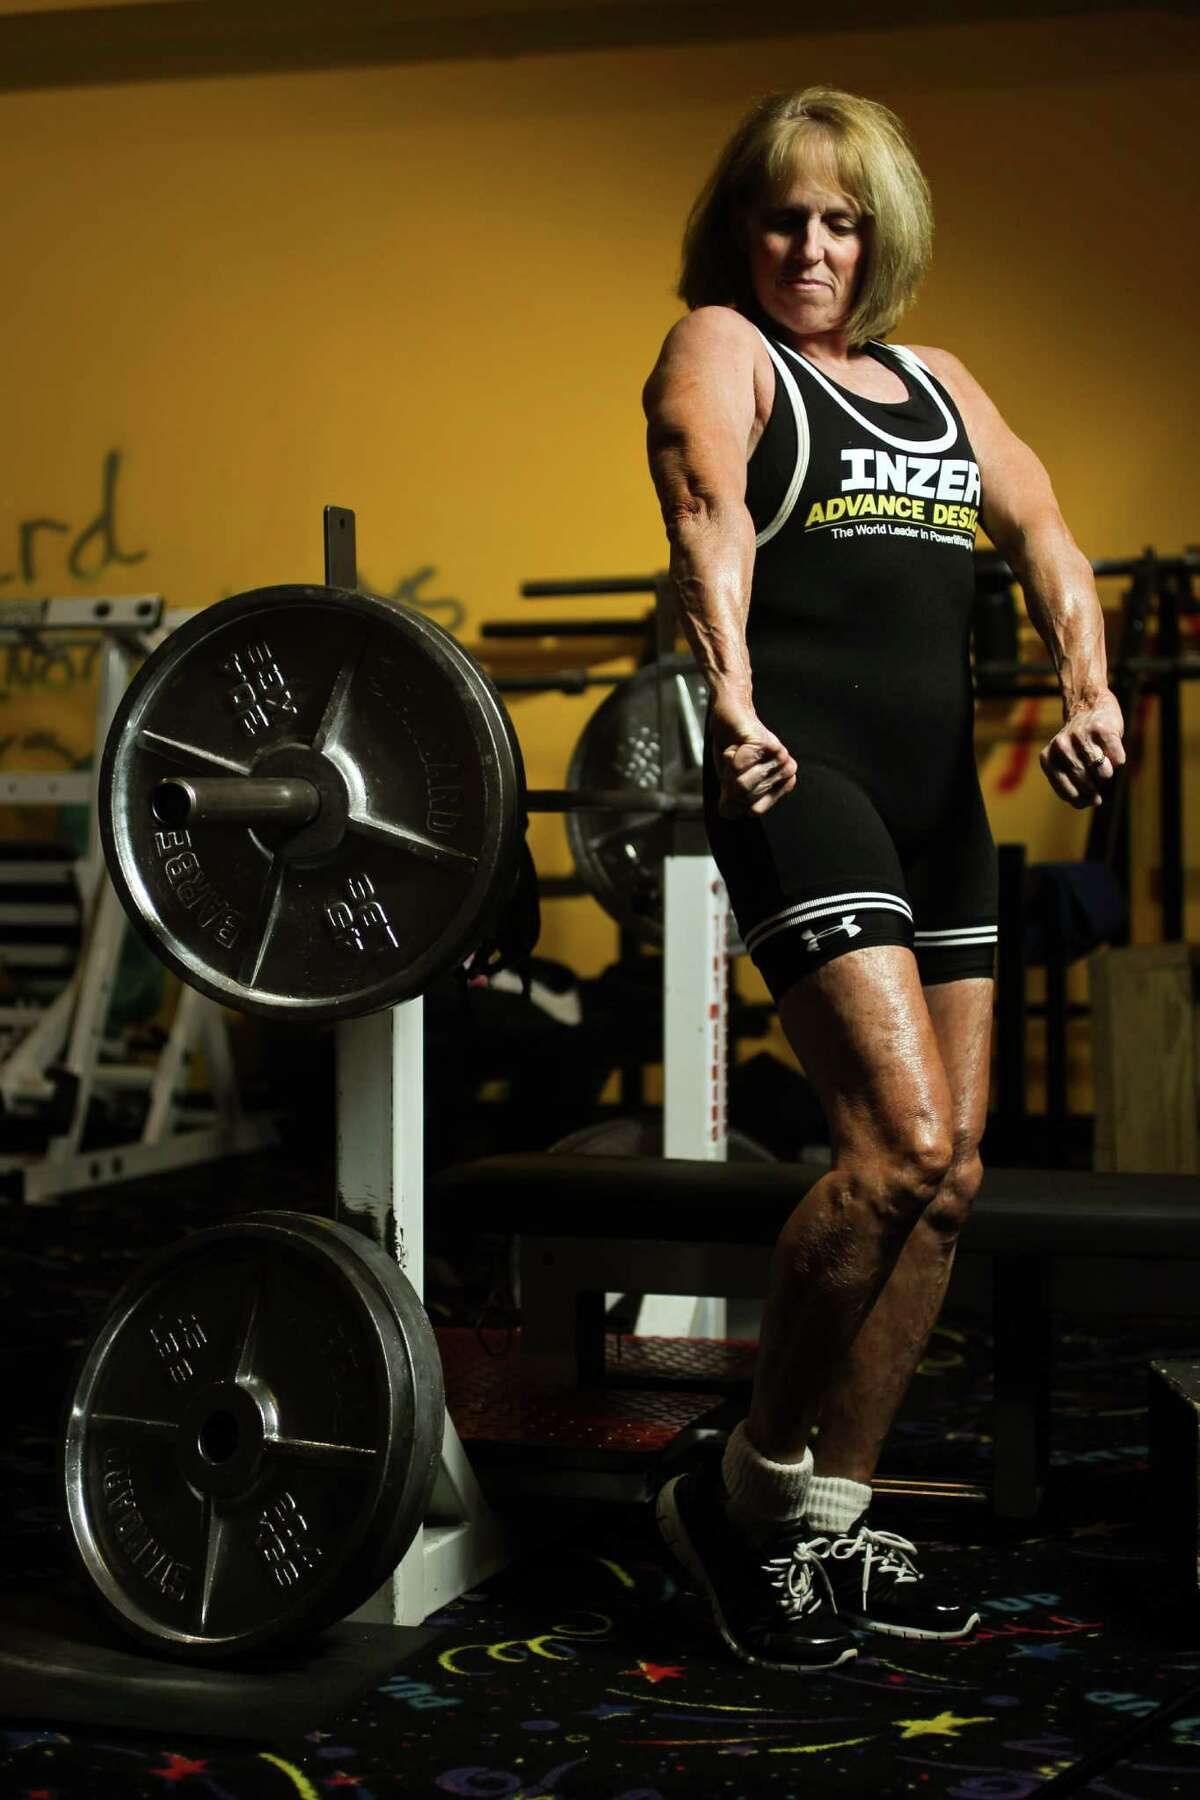 Jill Porter, a world-class powerlifter, decided to have direct anterior hip replacement surgery after hearing that the method boasted faster recovery times and fewer complications.